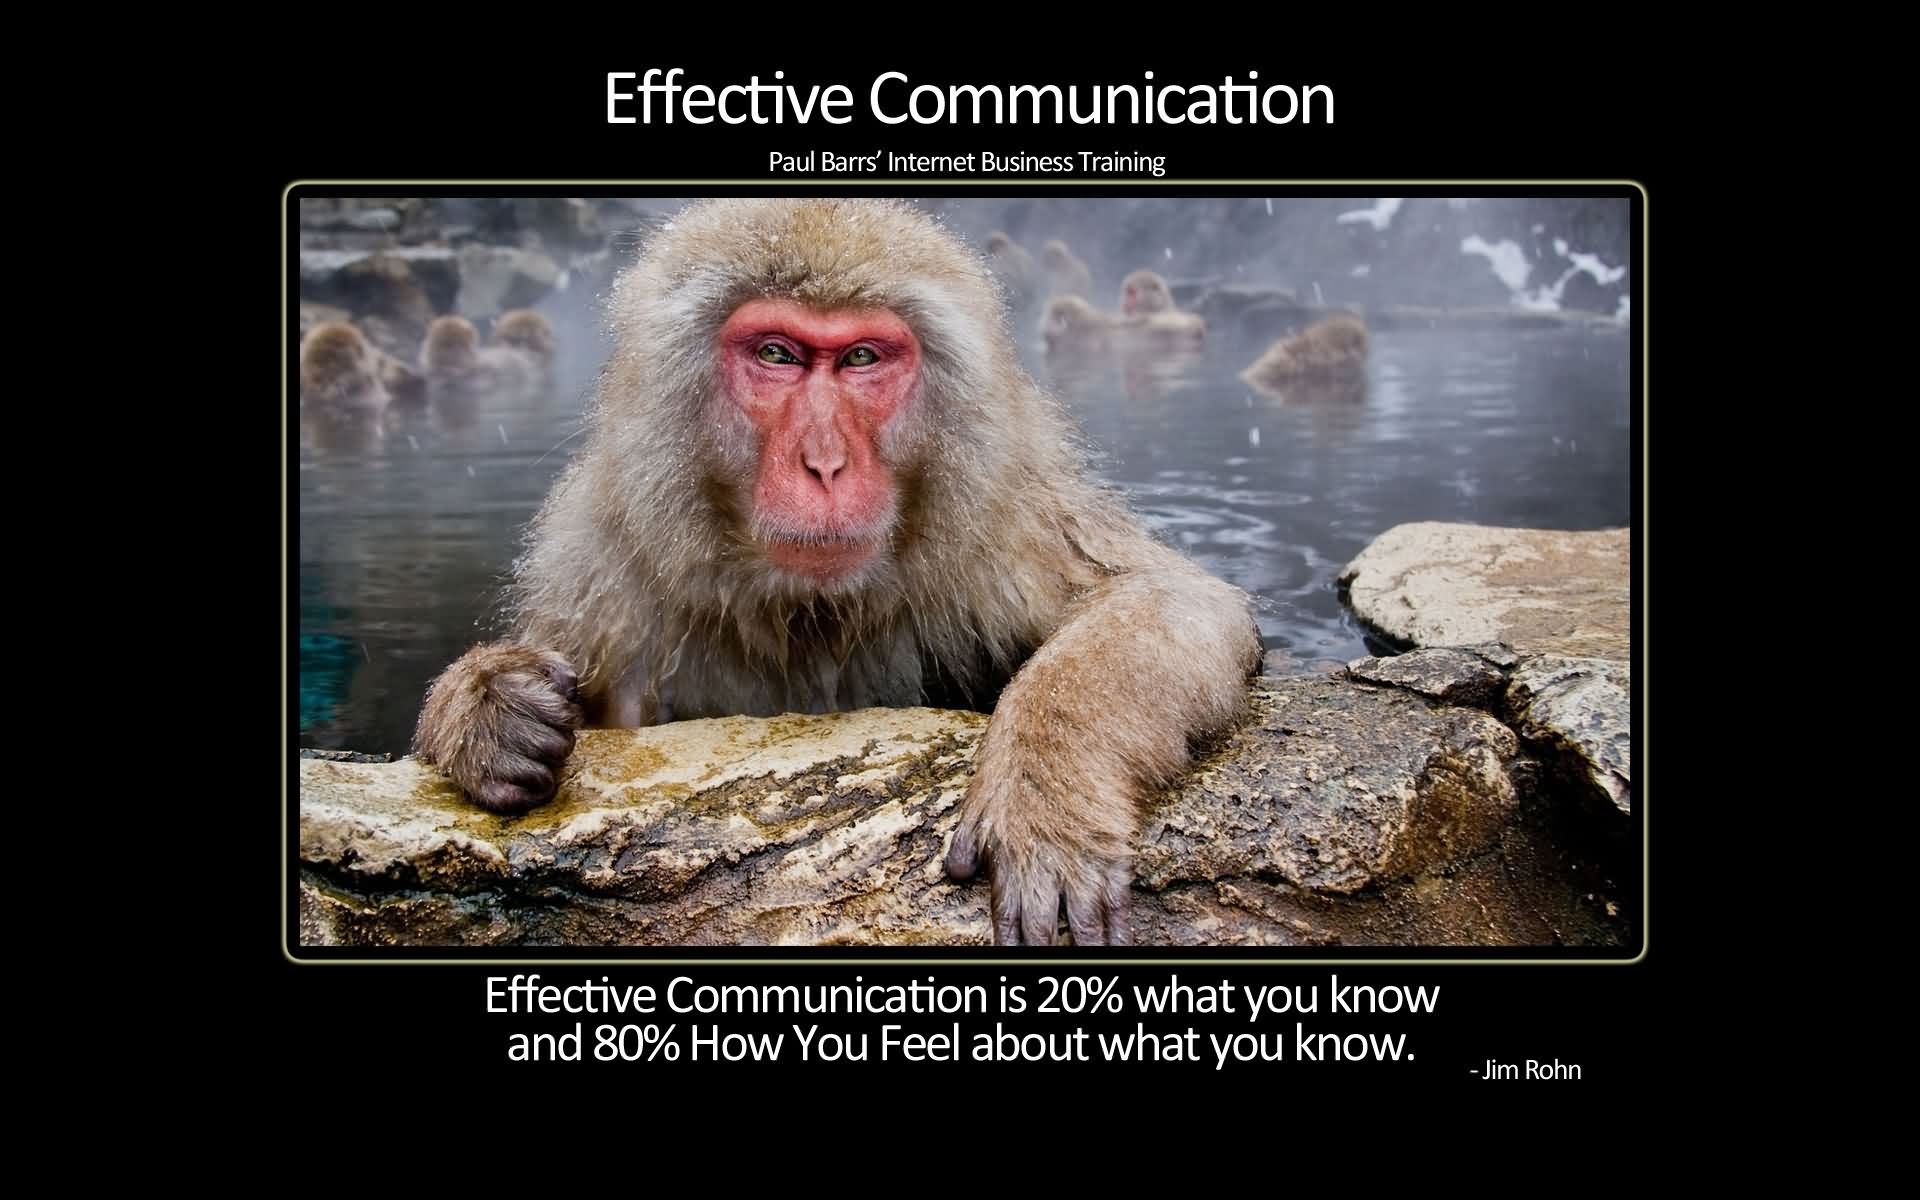 Effective Communication Is 20% What You Know And 80% How You Feel About What You Know. (3)